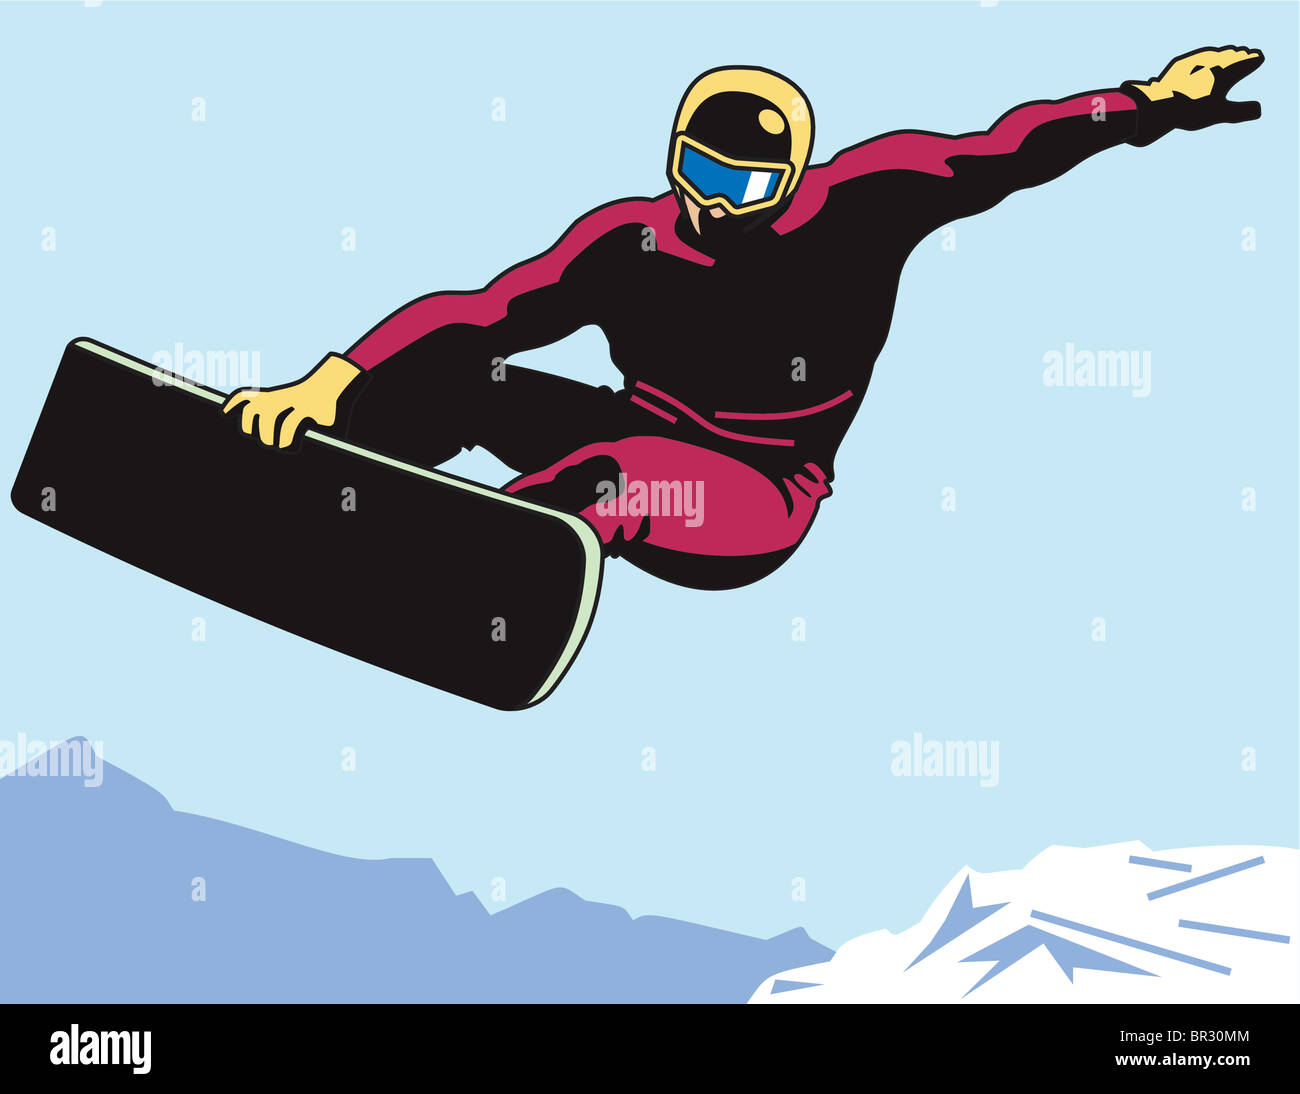 Un homme snowboard Photo Stock